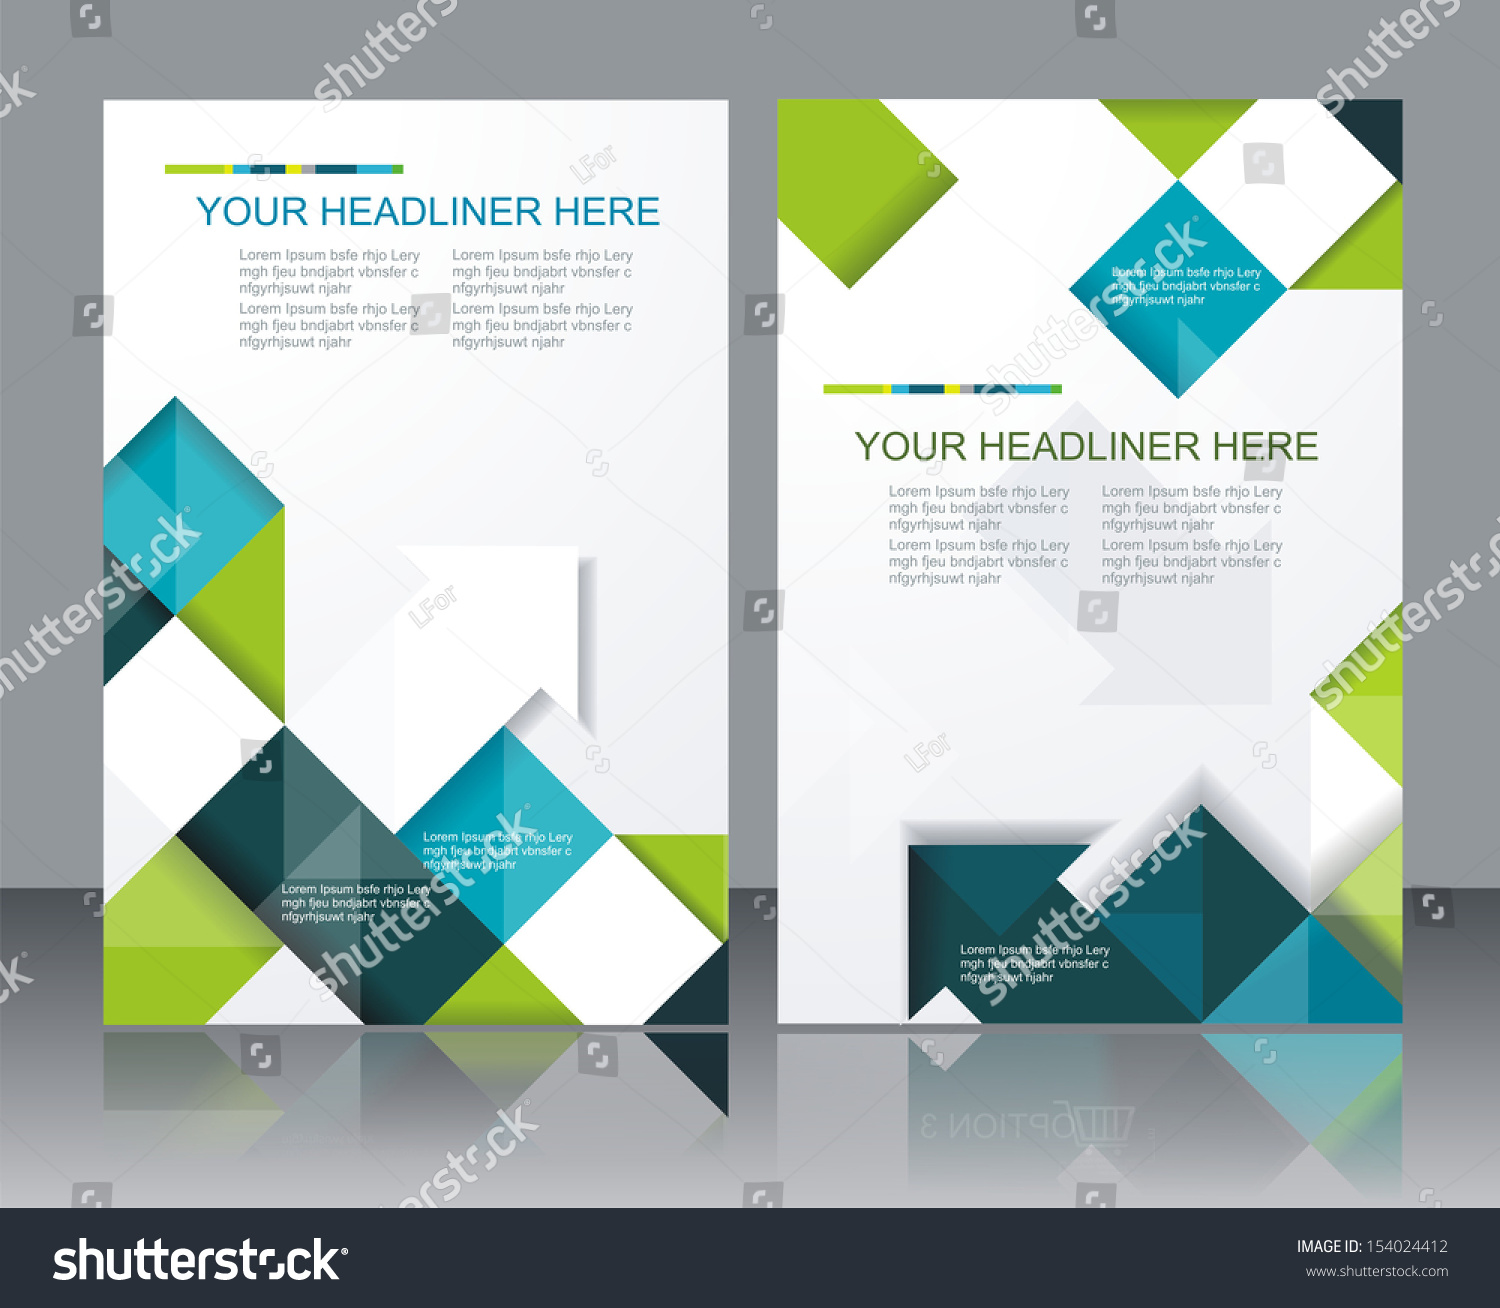 brochure template vector - vector brochure template design cubes arrows stock vector